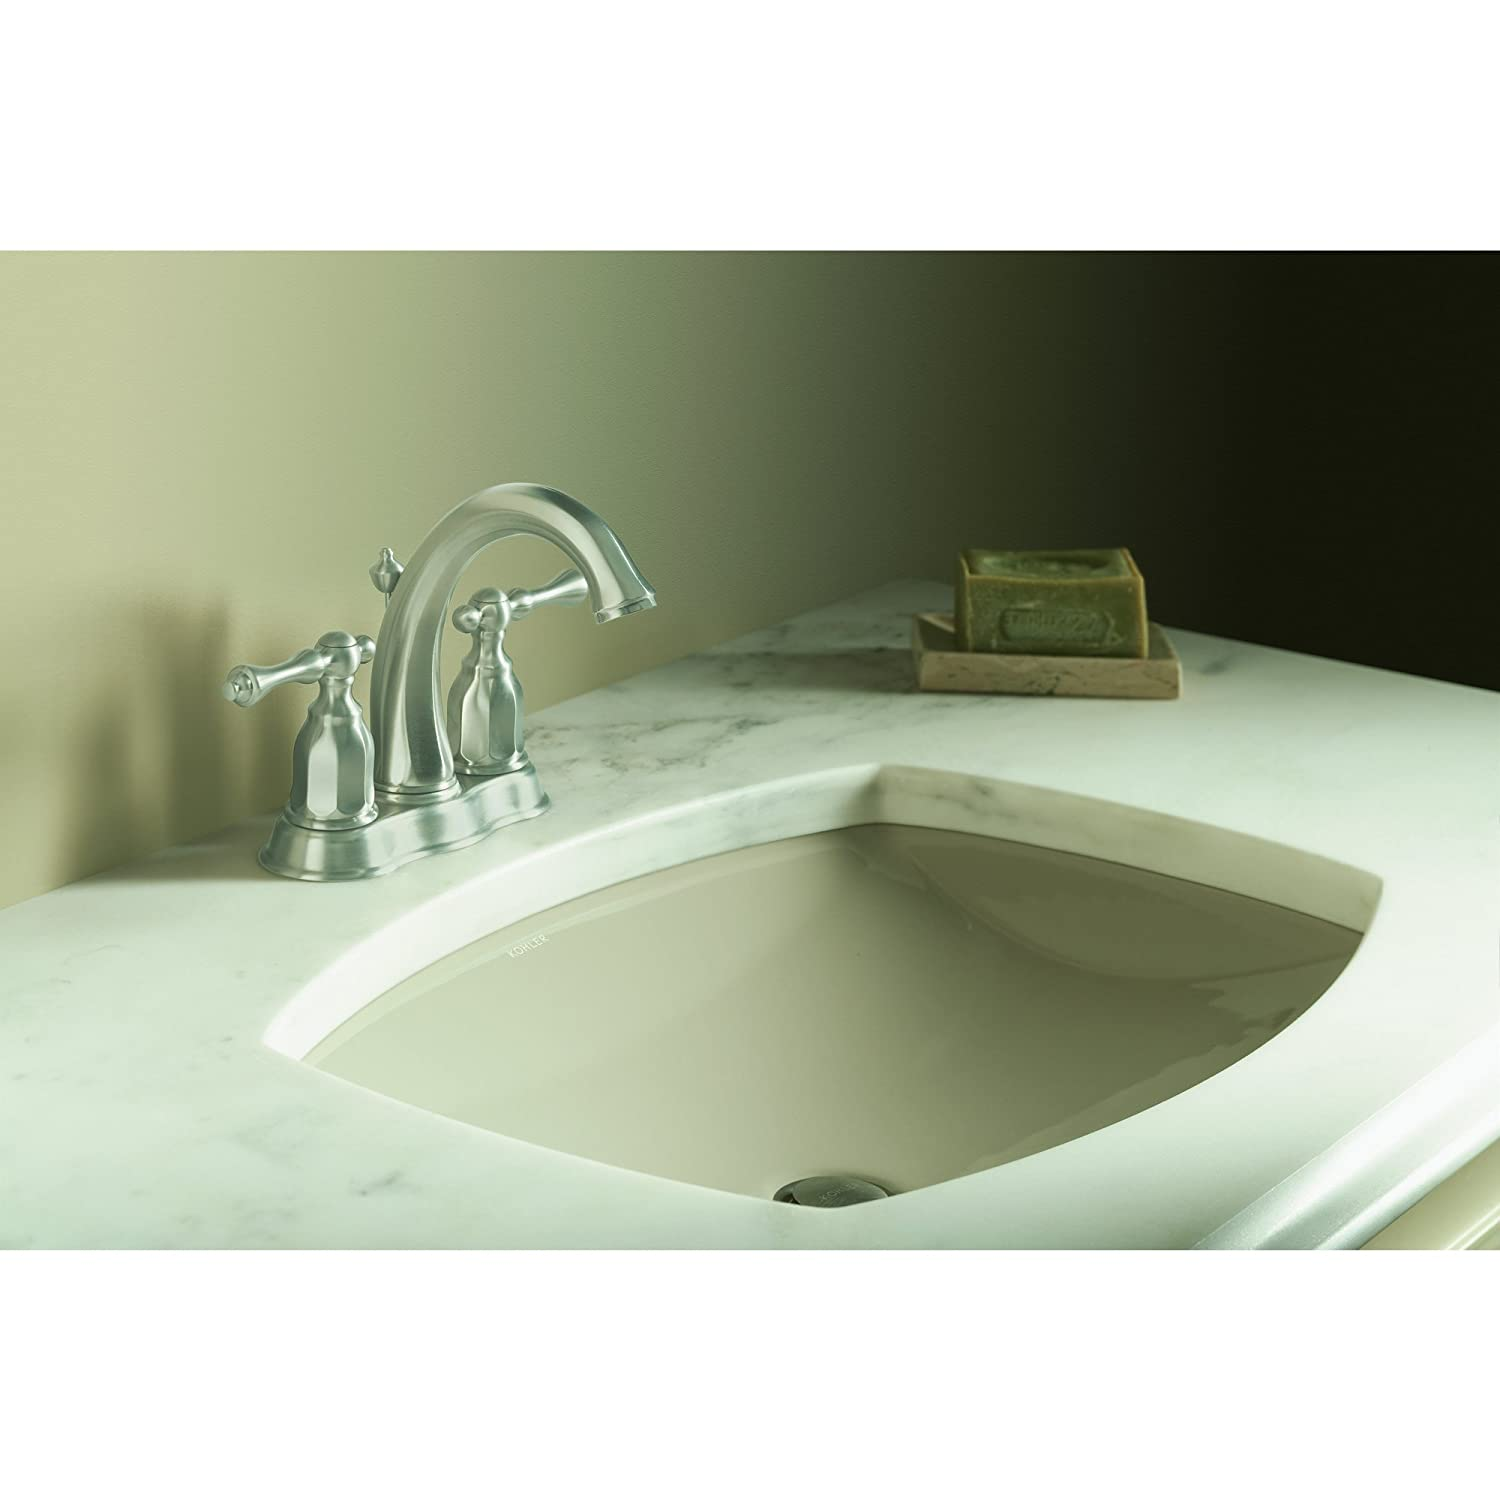 KOHLER K-13490-4-BN Kelston Center Set Bathroom Sink Faucet, Vibrant Brushed Nickel